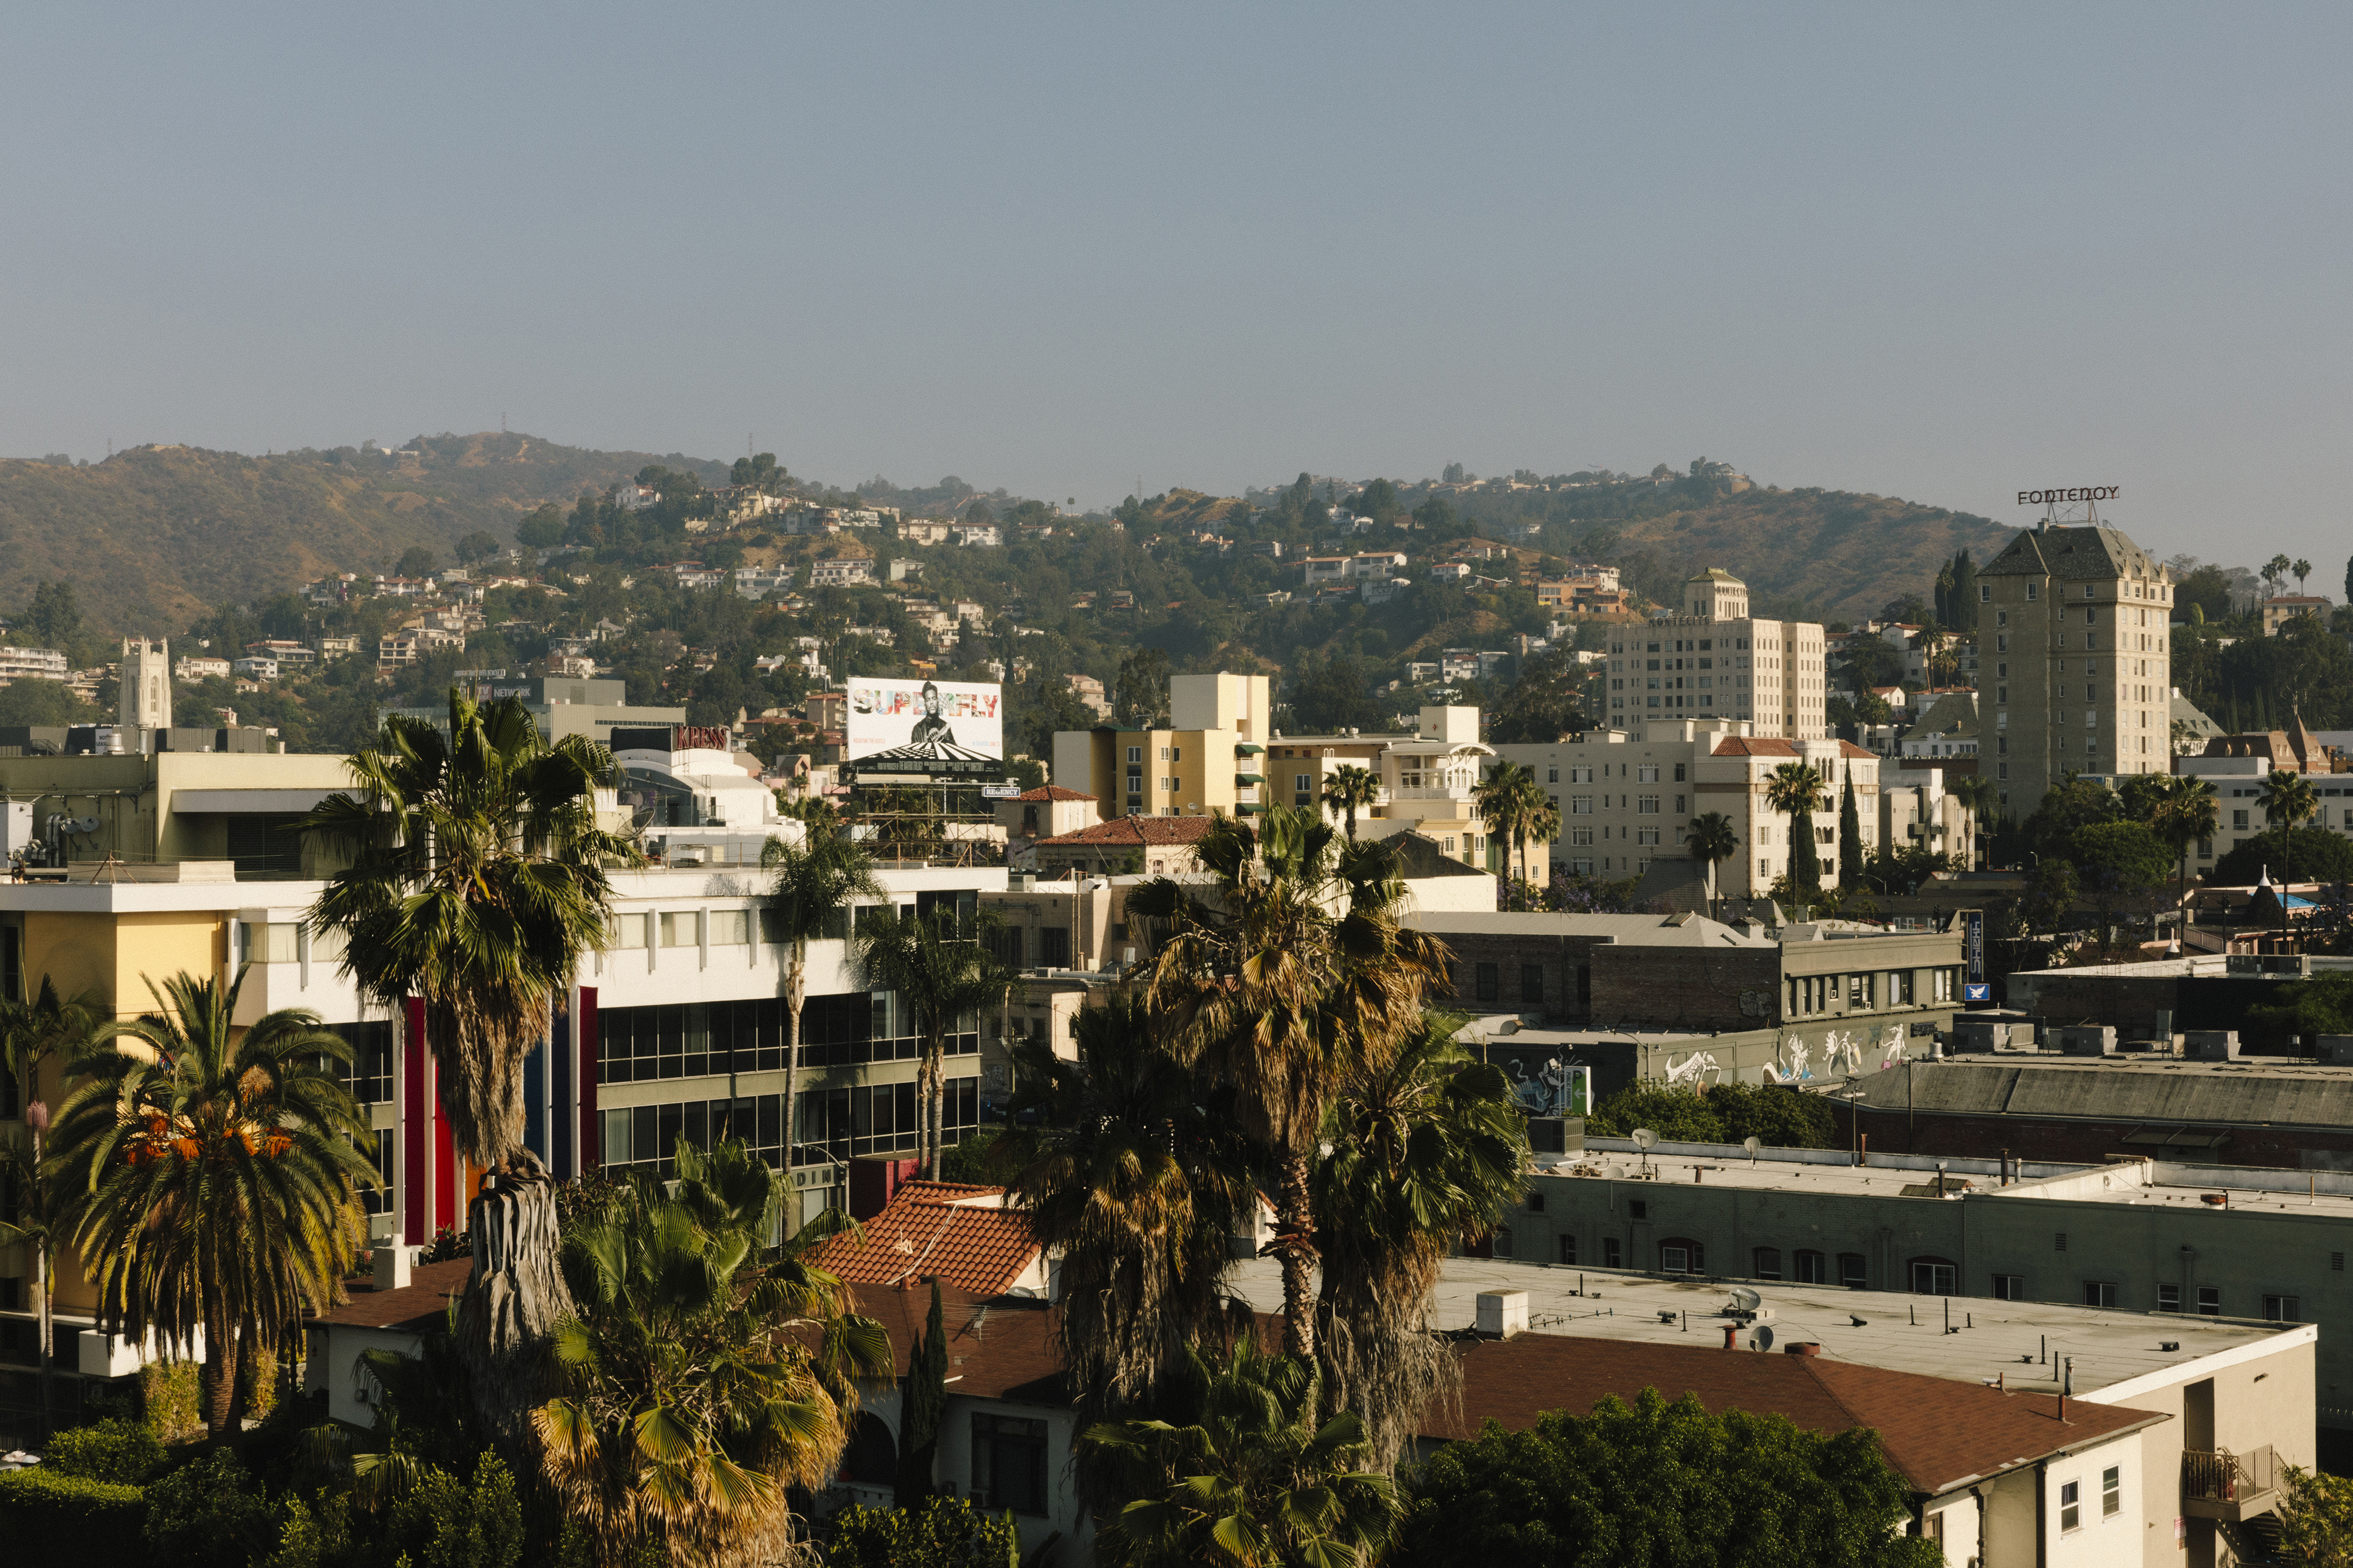 Aerial view of a city scape. Hills dotted with homes in the background and tall buildings and palm trees in the foreground against a hazy blue sky.